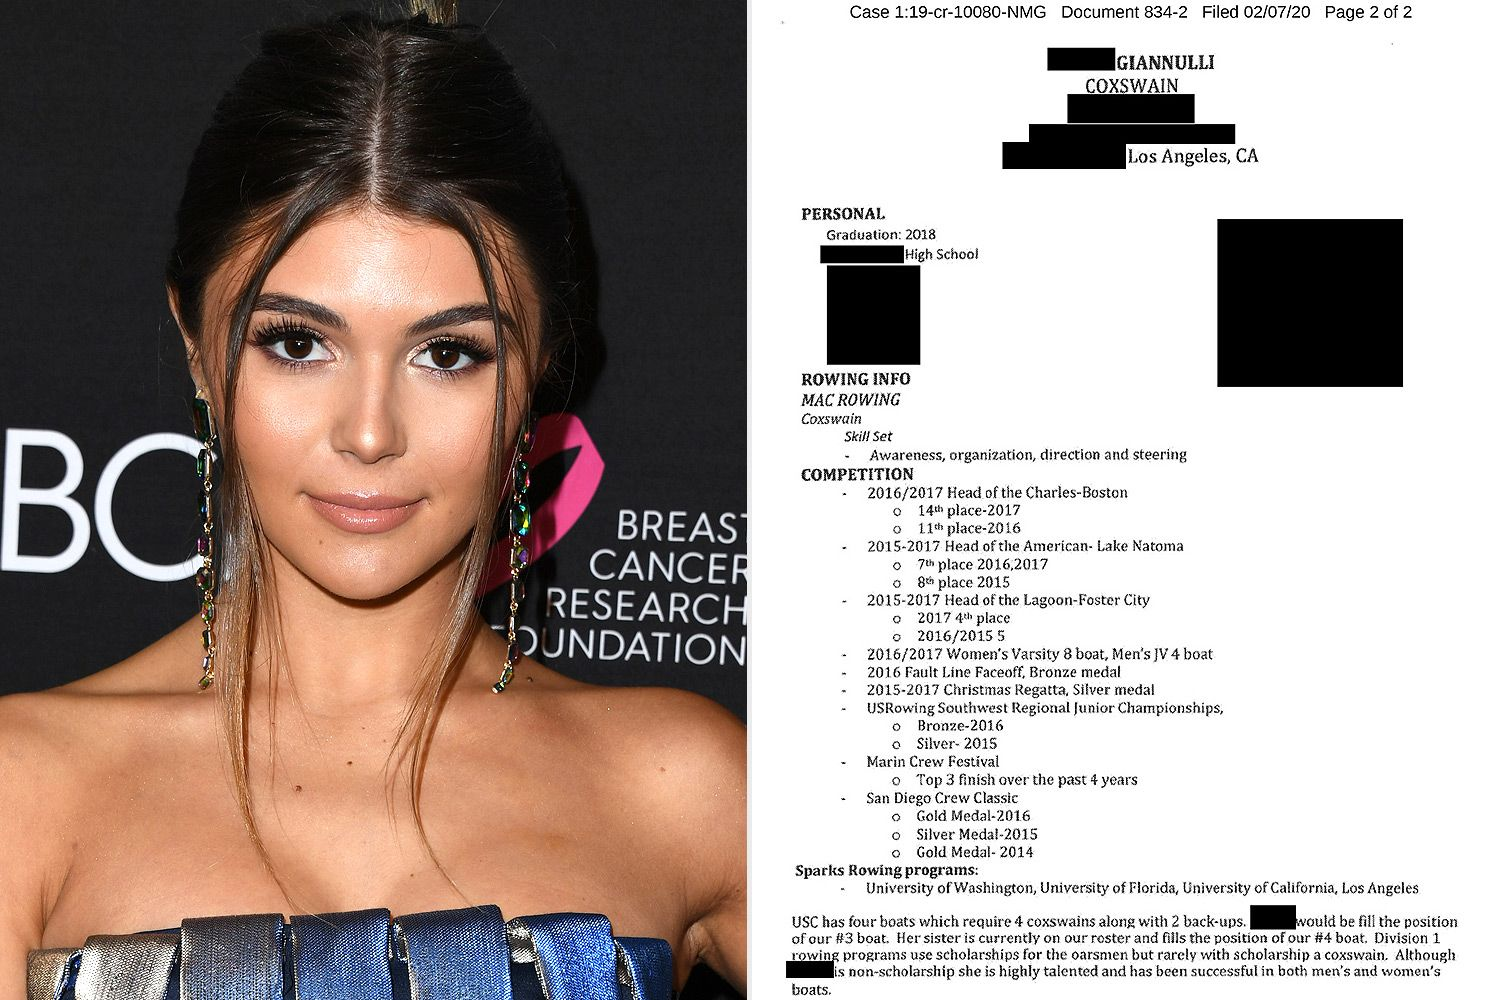 Fake Resume that Appears to Be About Lori Loughlin's